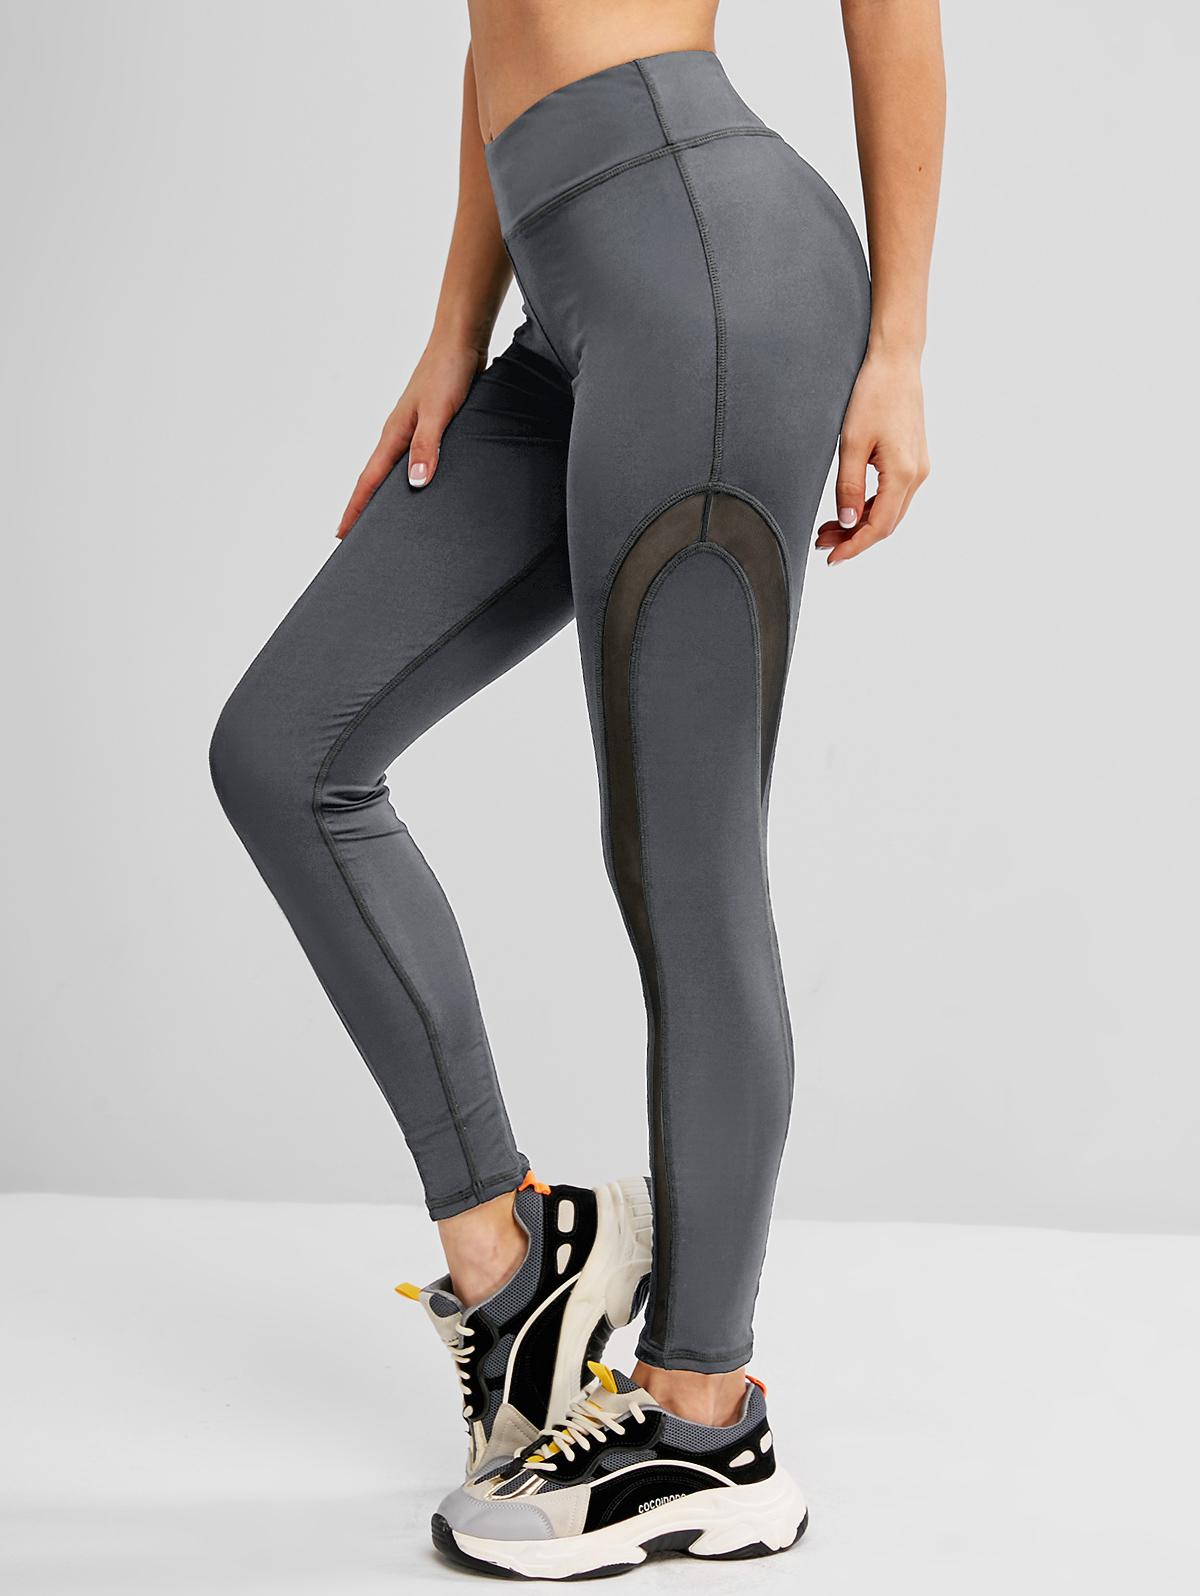 Mesh Panel Topstitch High Waisted Gym Leggings